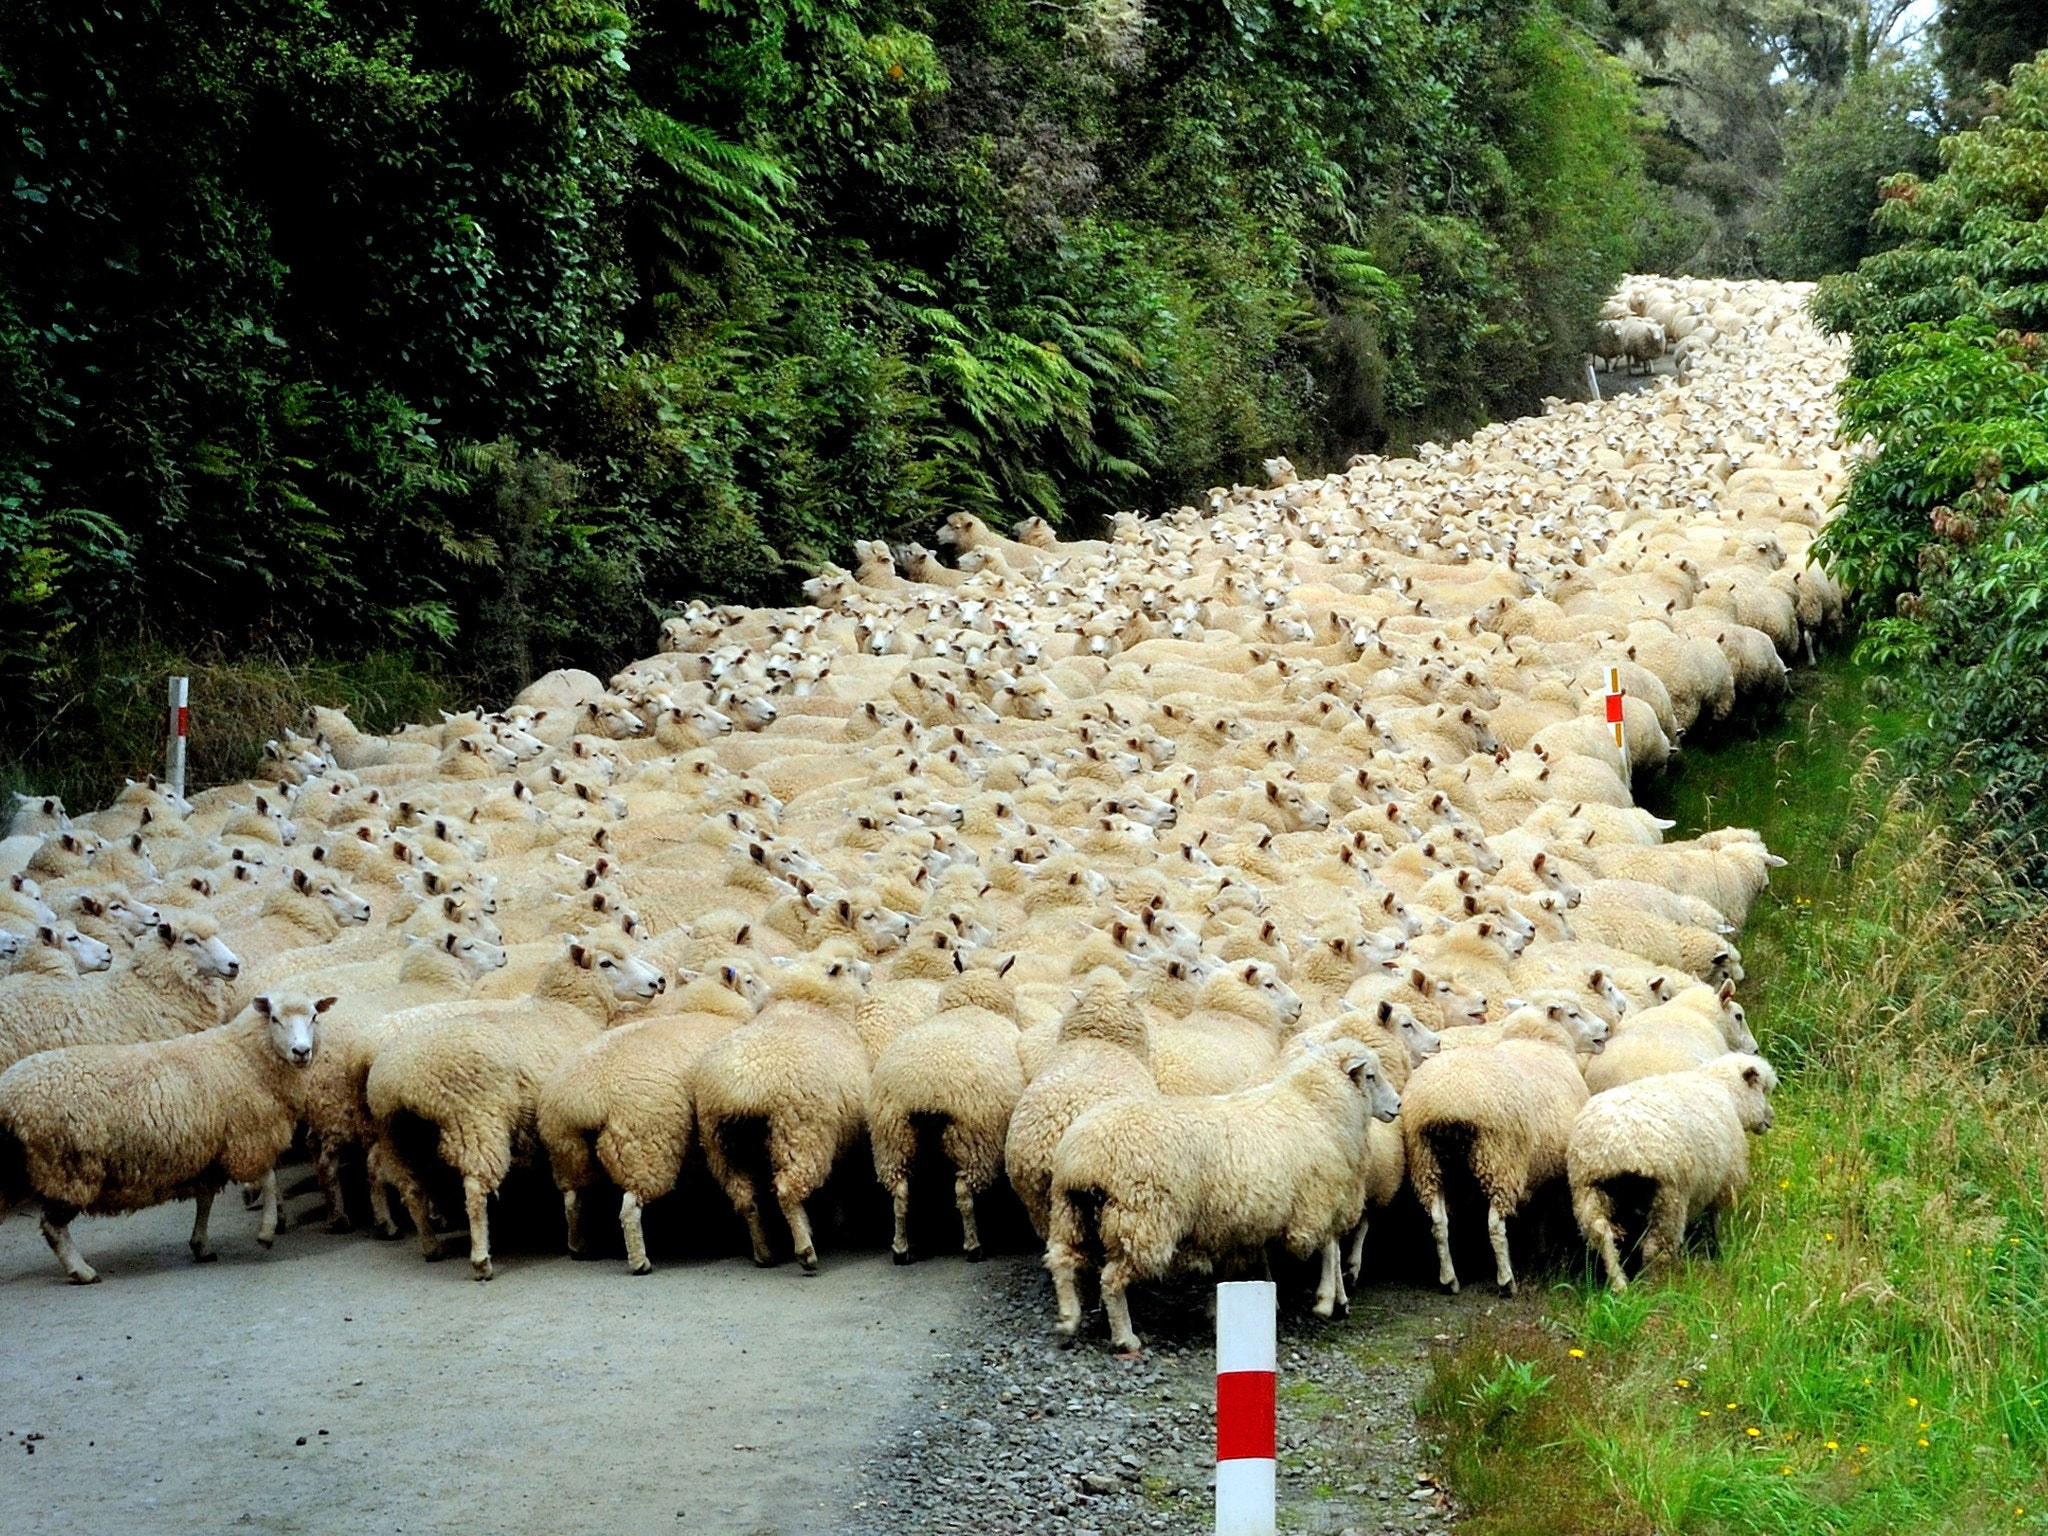 Speed dating in wales sheep